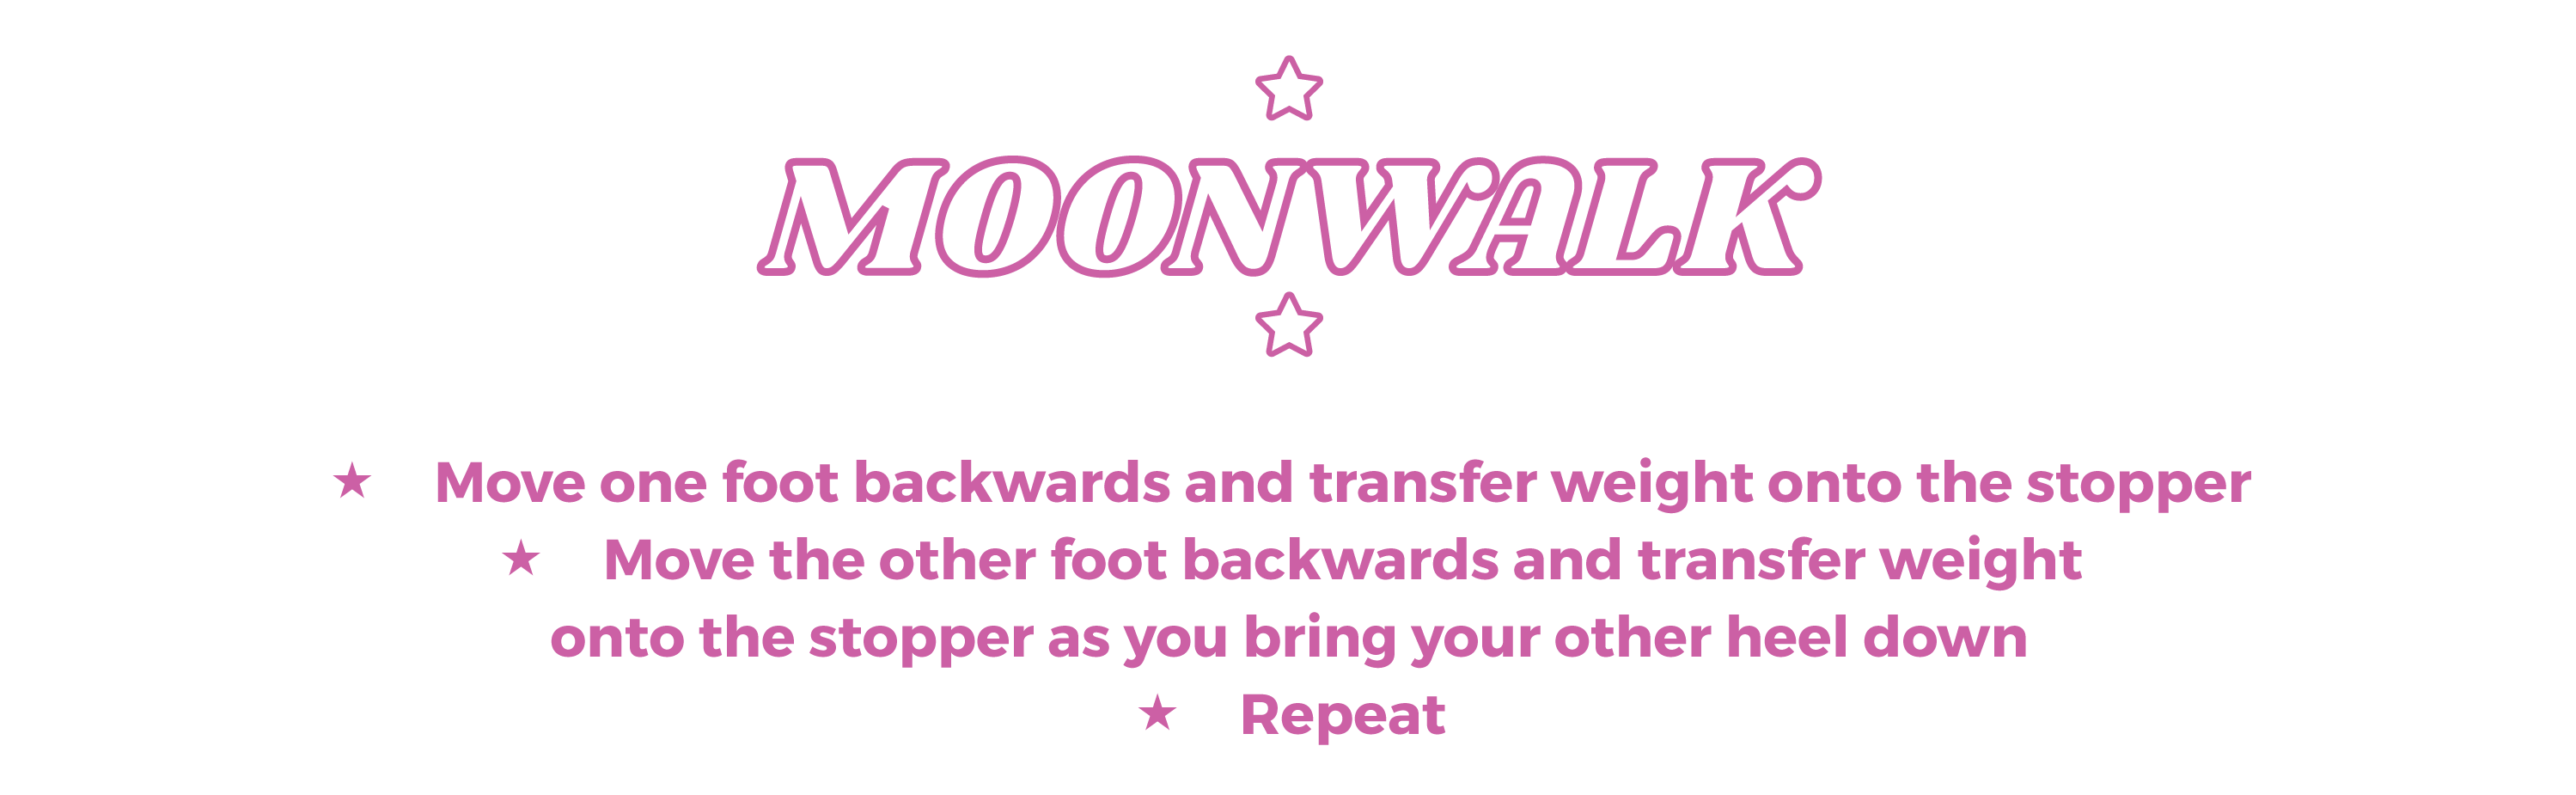 Moonwalk Trick Tips from Impala Rollerskates